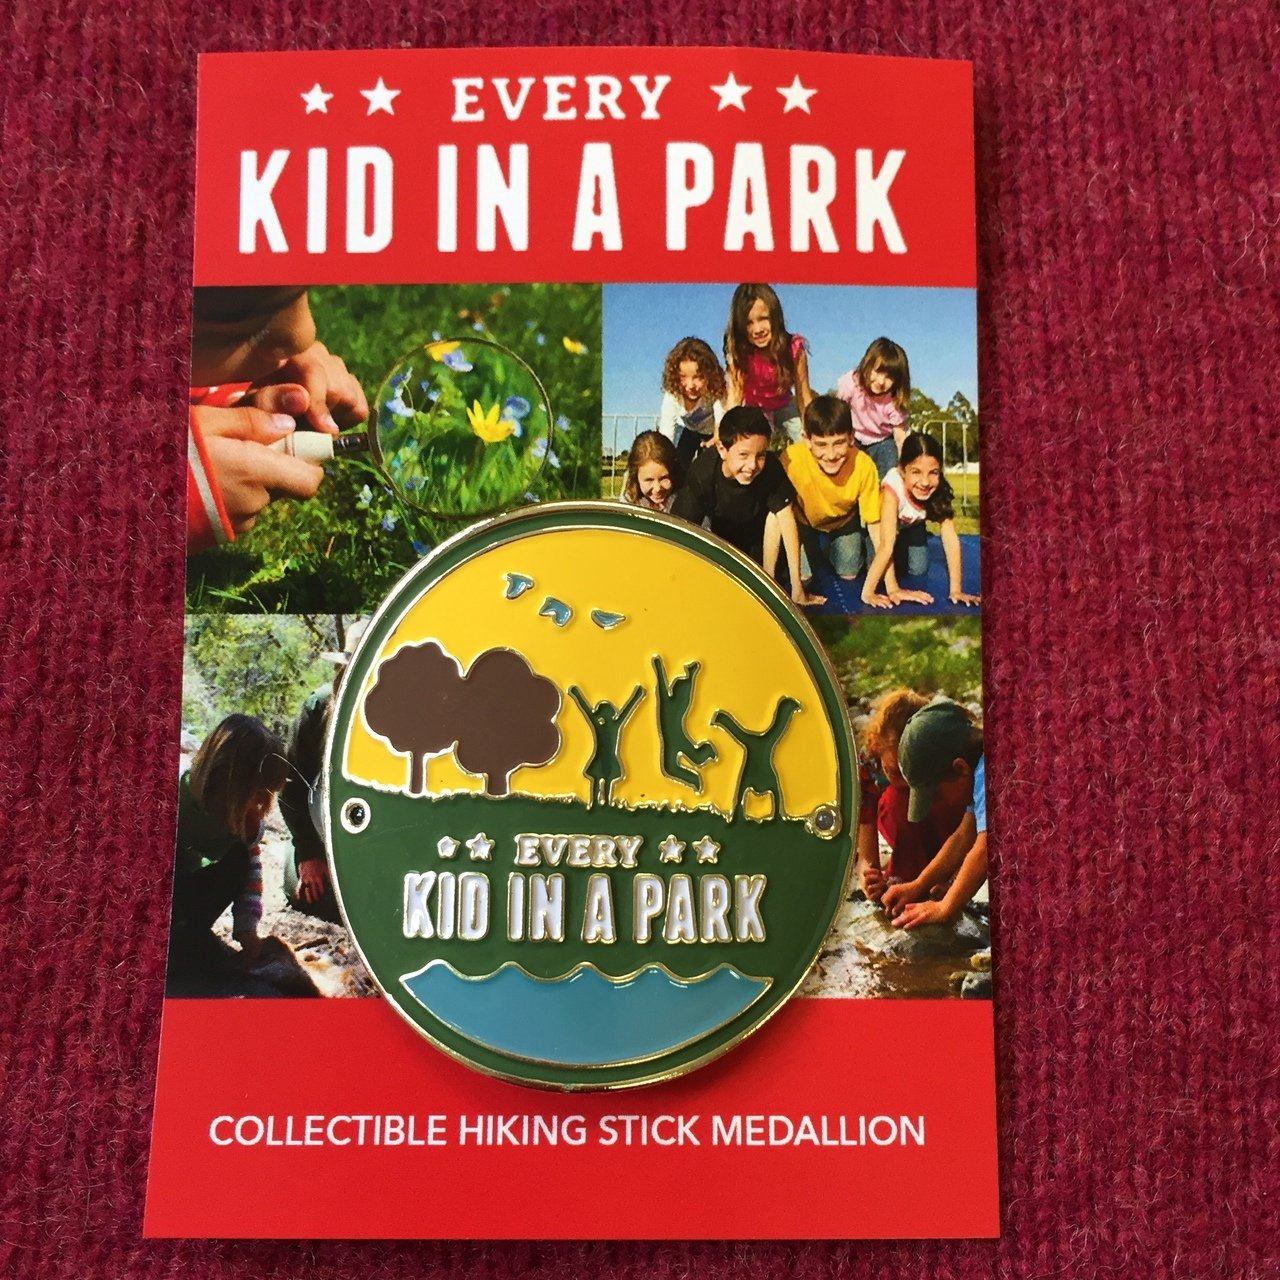 Every Kid in a Park hiking medallion